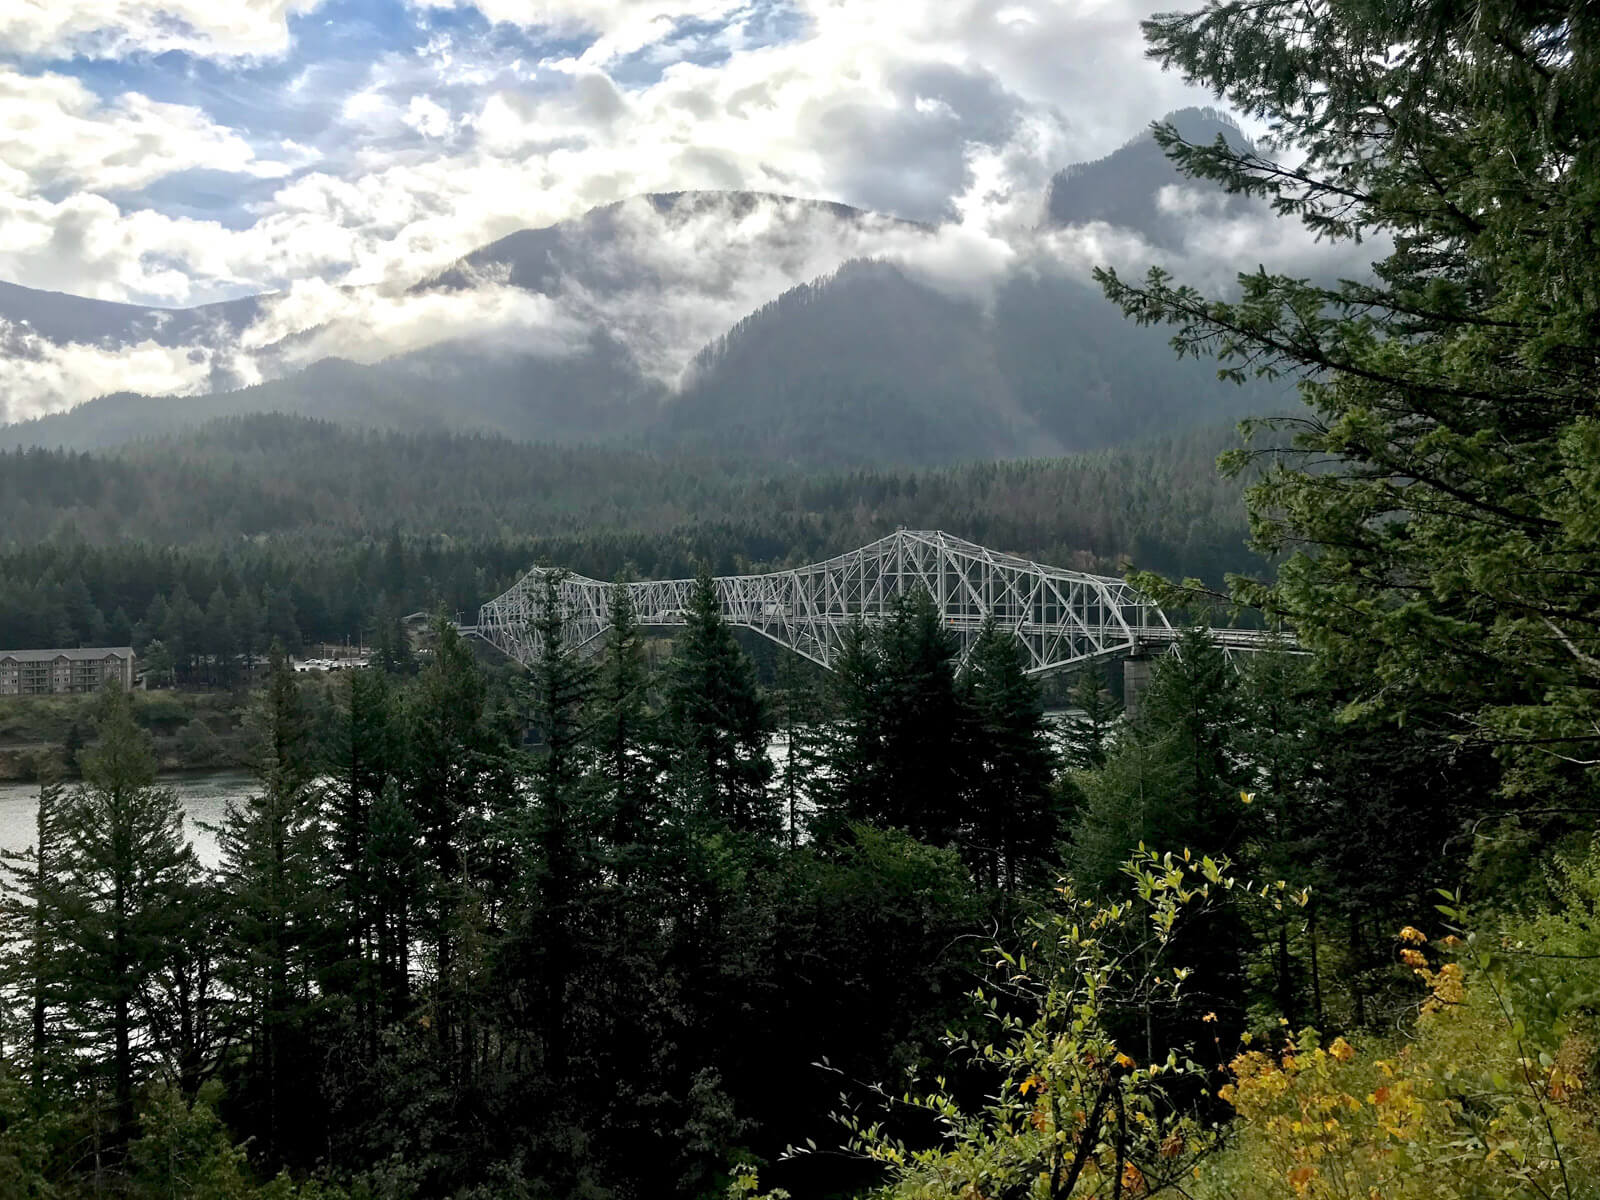 A view of the Bridge of Gods from Washington state. The view of the bridge is partially obstructed by trees